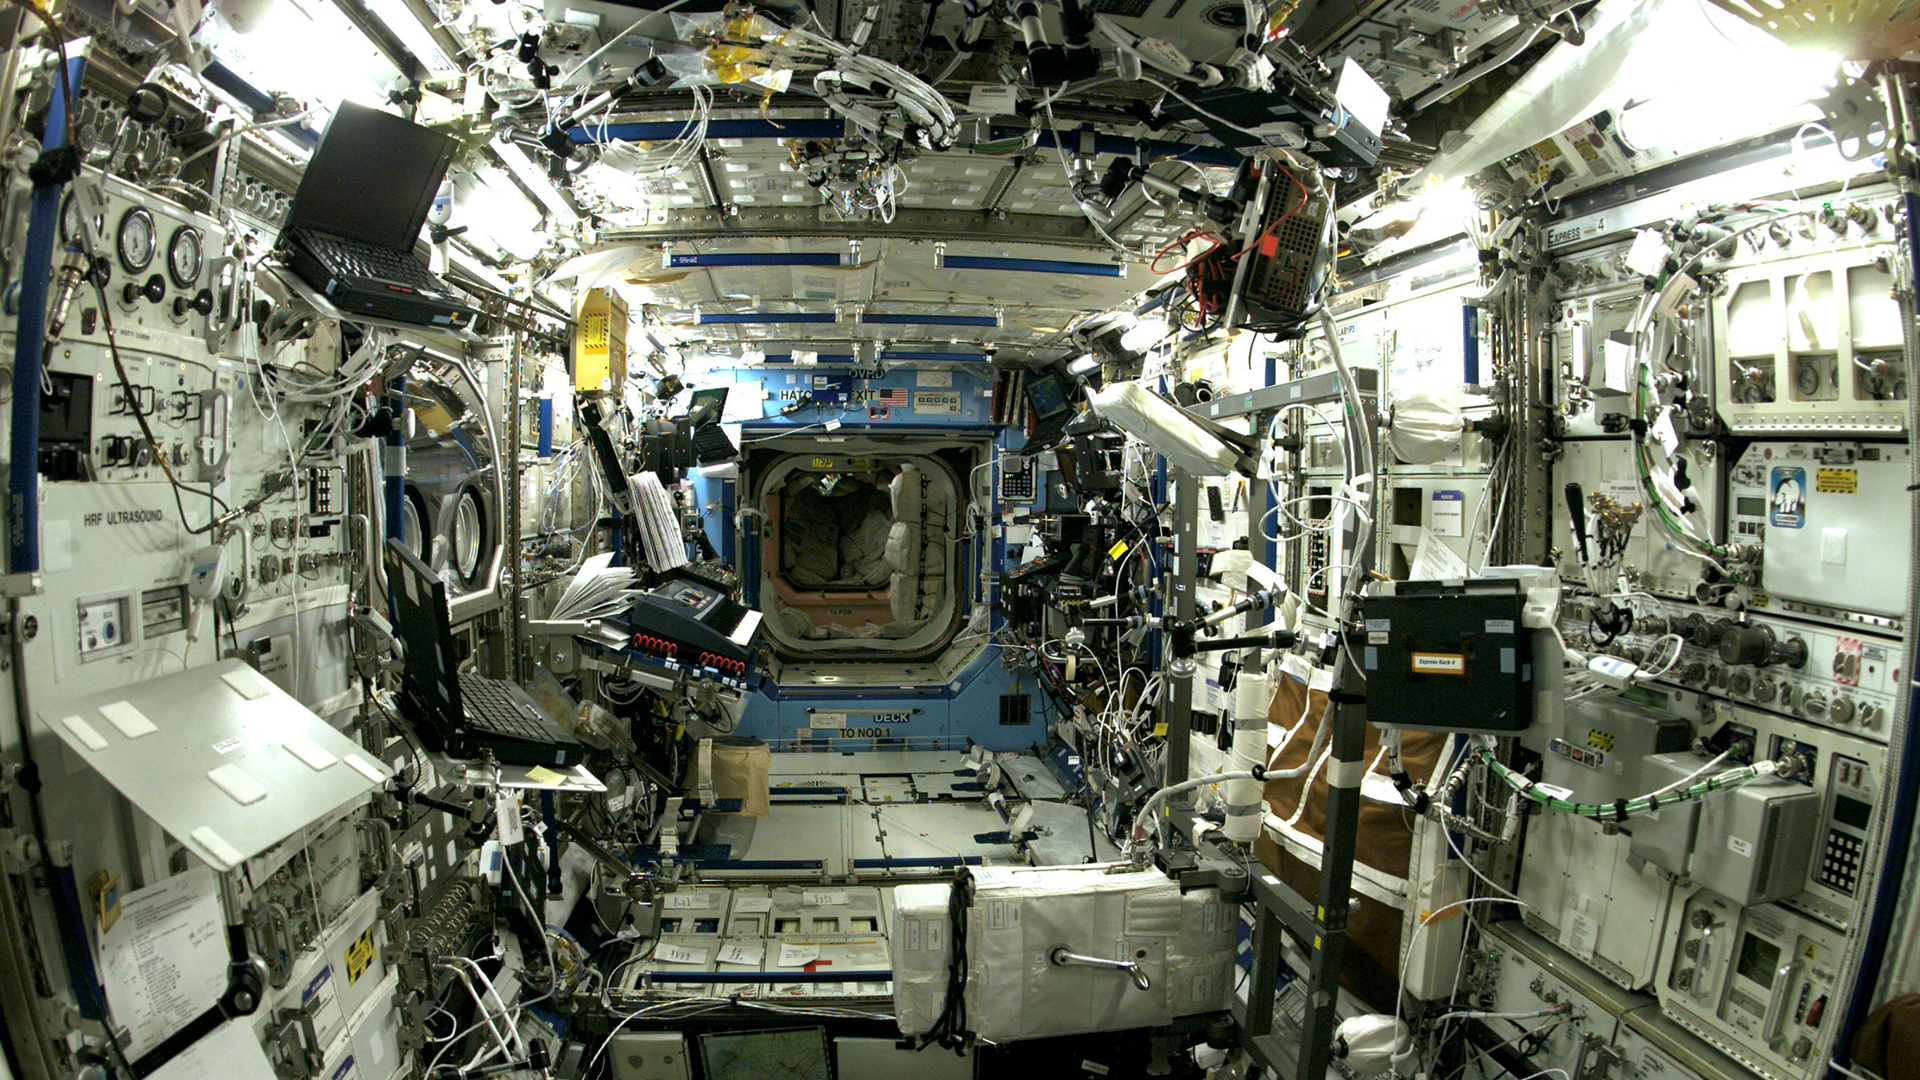 Inside the International Space Station. Virtual background to use on Zoom, Microsoft Teams, Skype, Google Meet, WebEx or any other compatible app.